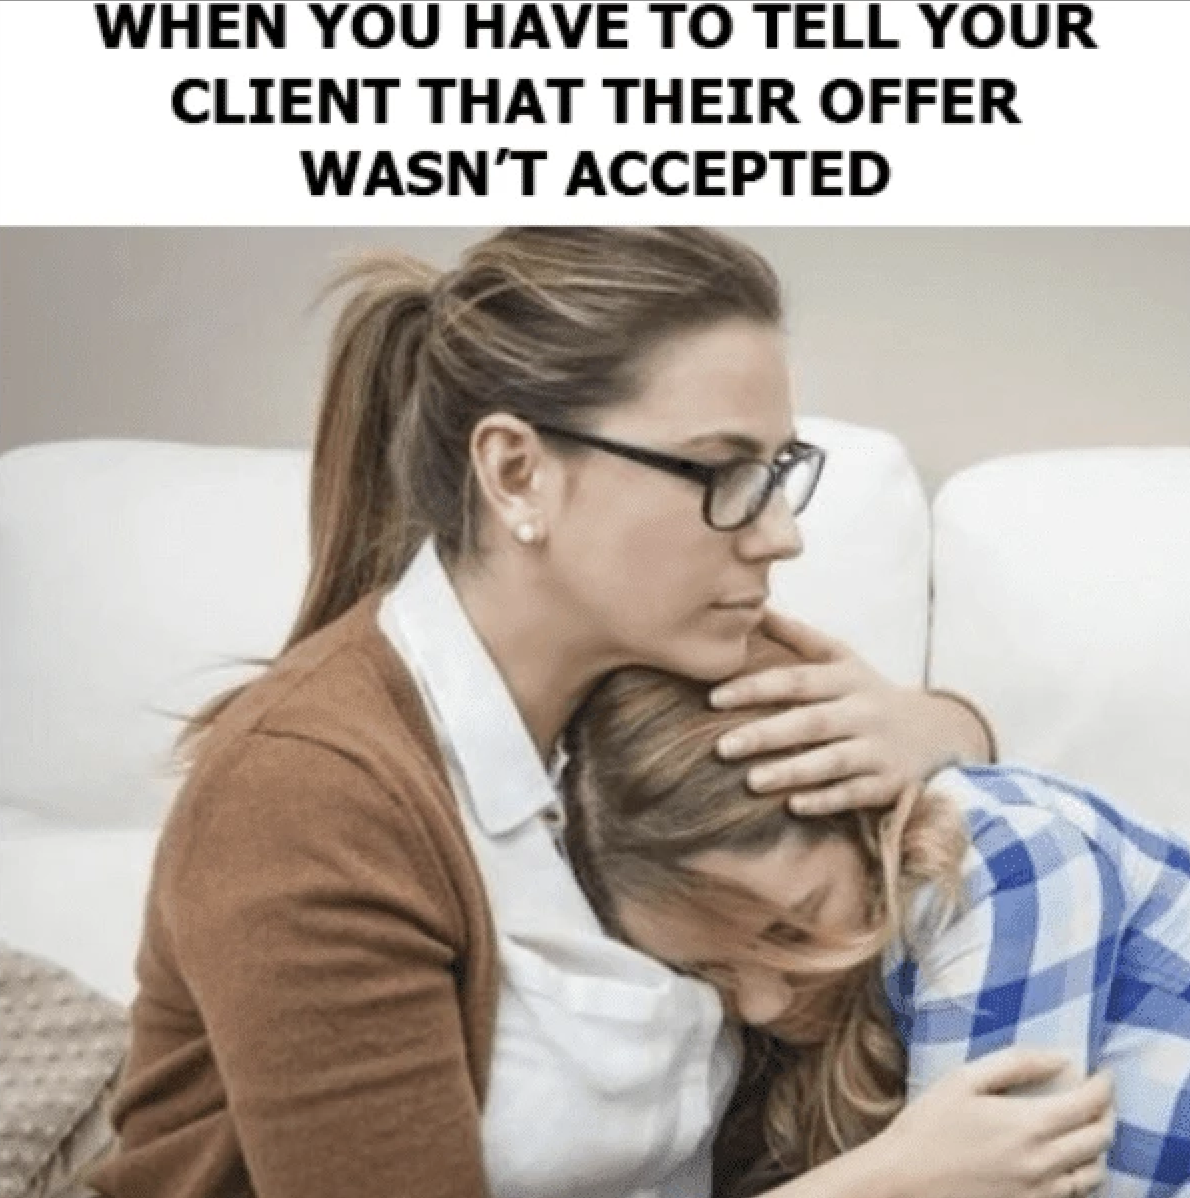 When you have to tell your client that their offer wasn't accepted